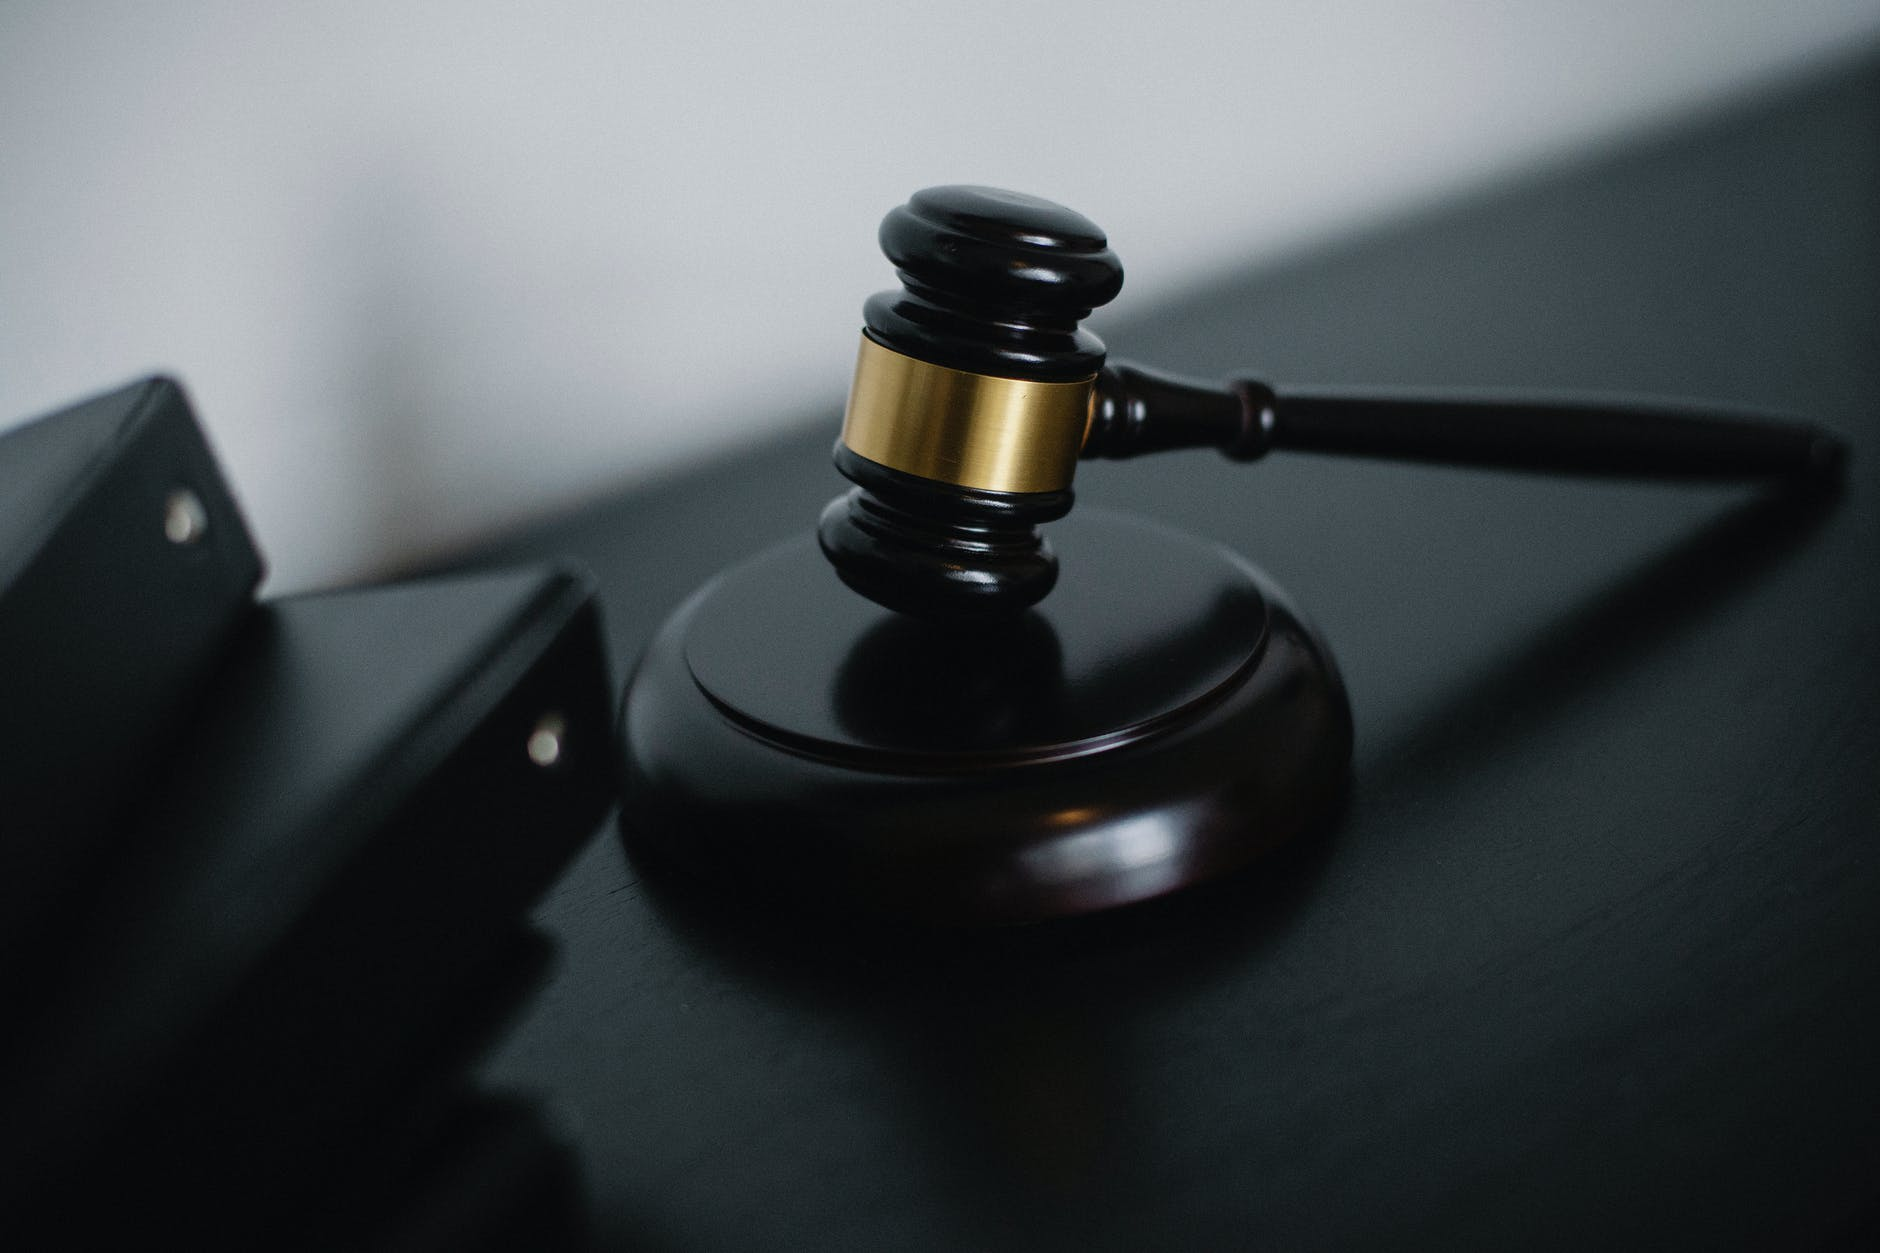 small judge gavel placed on table near folders